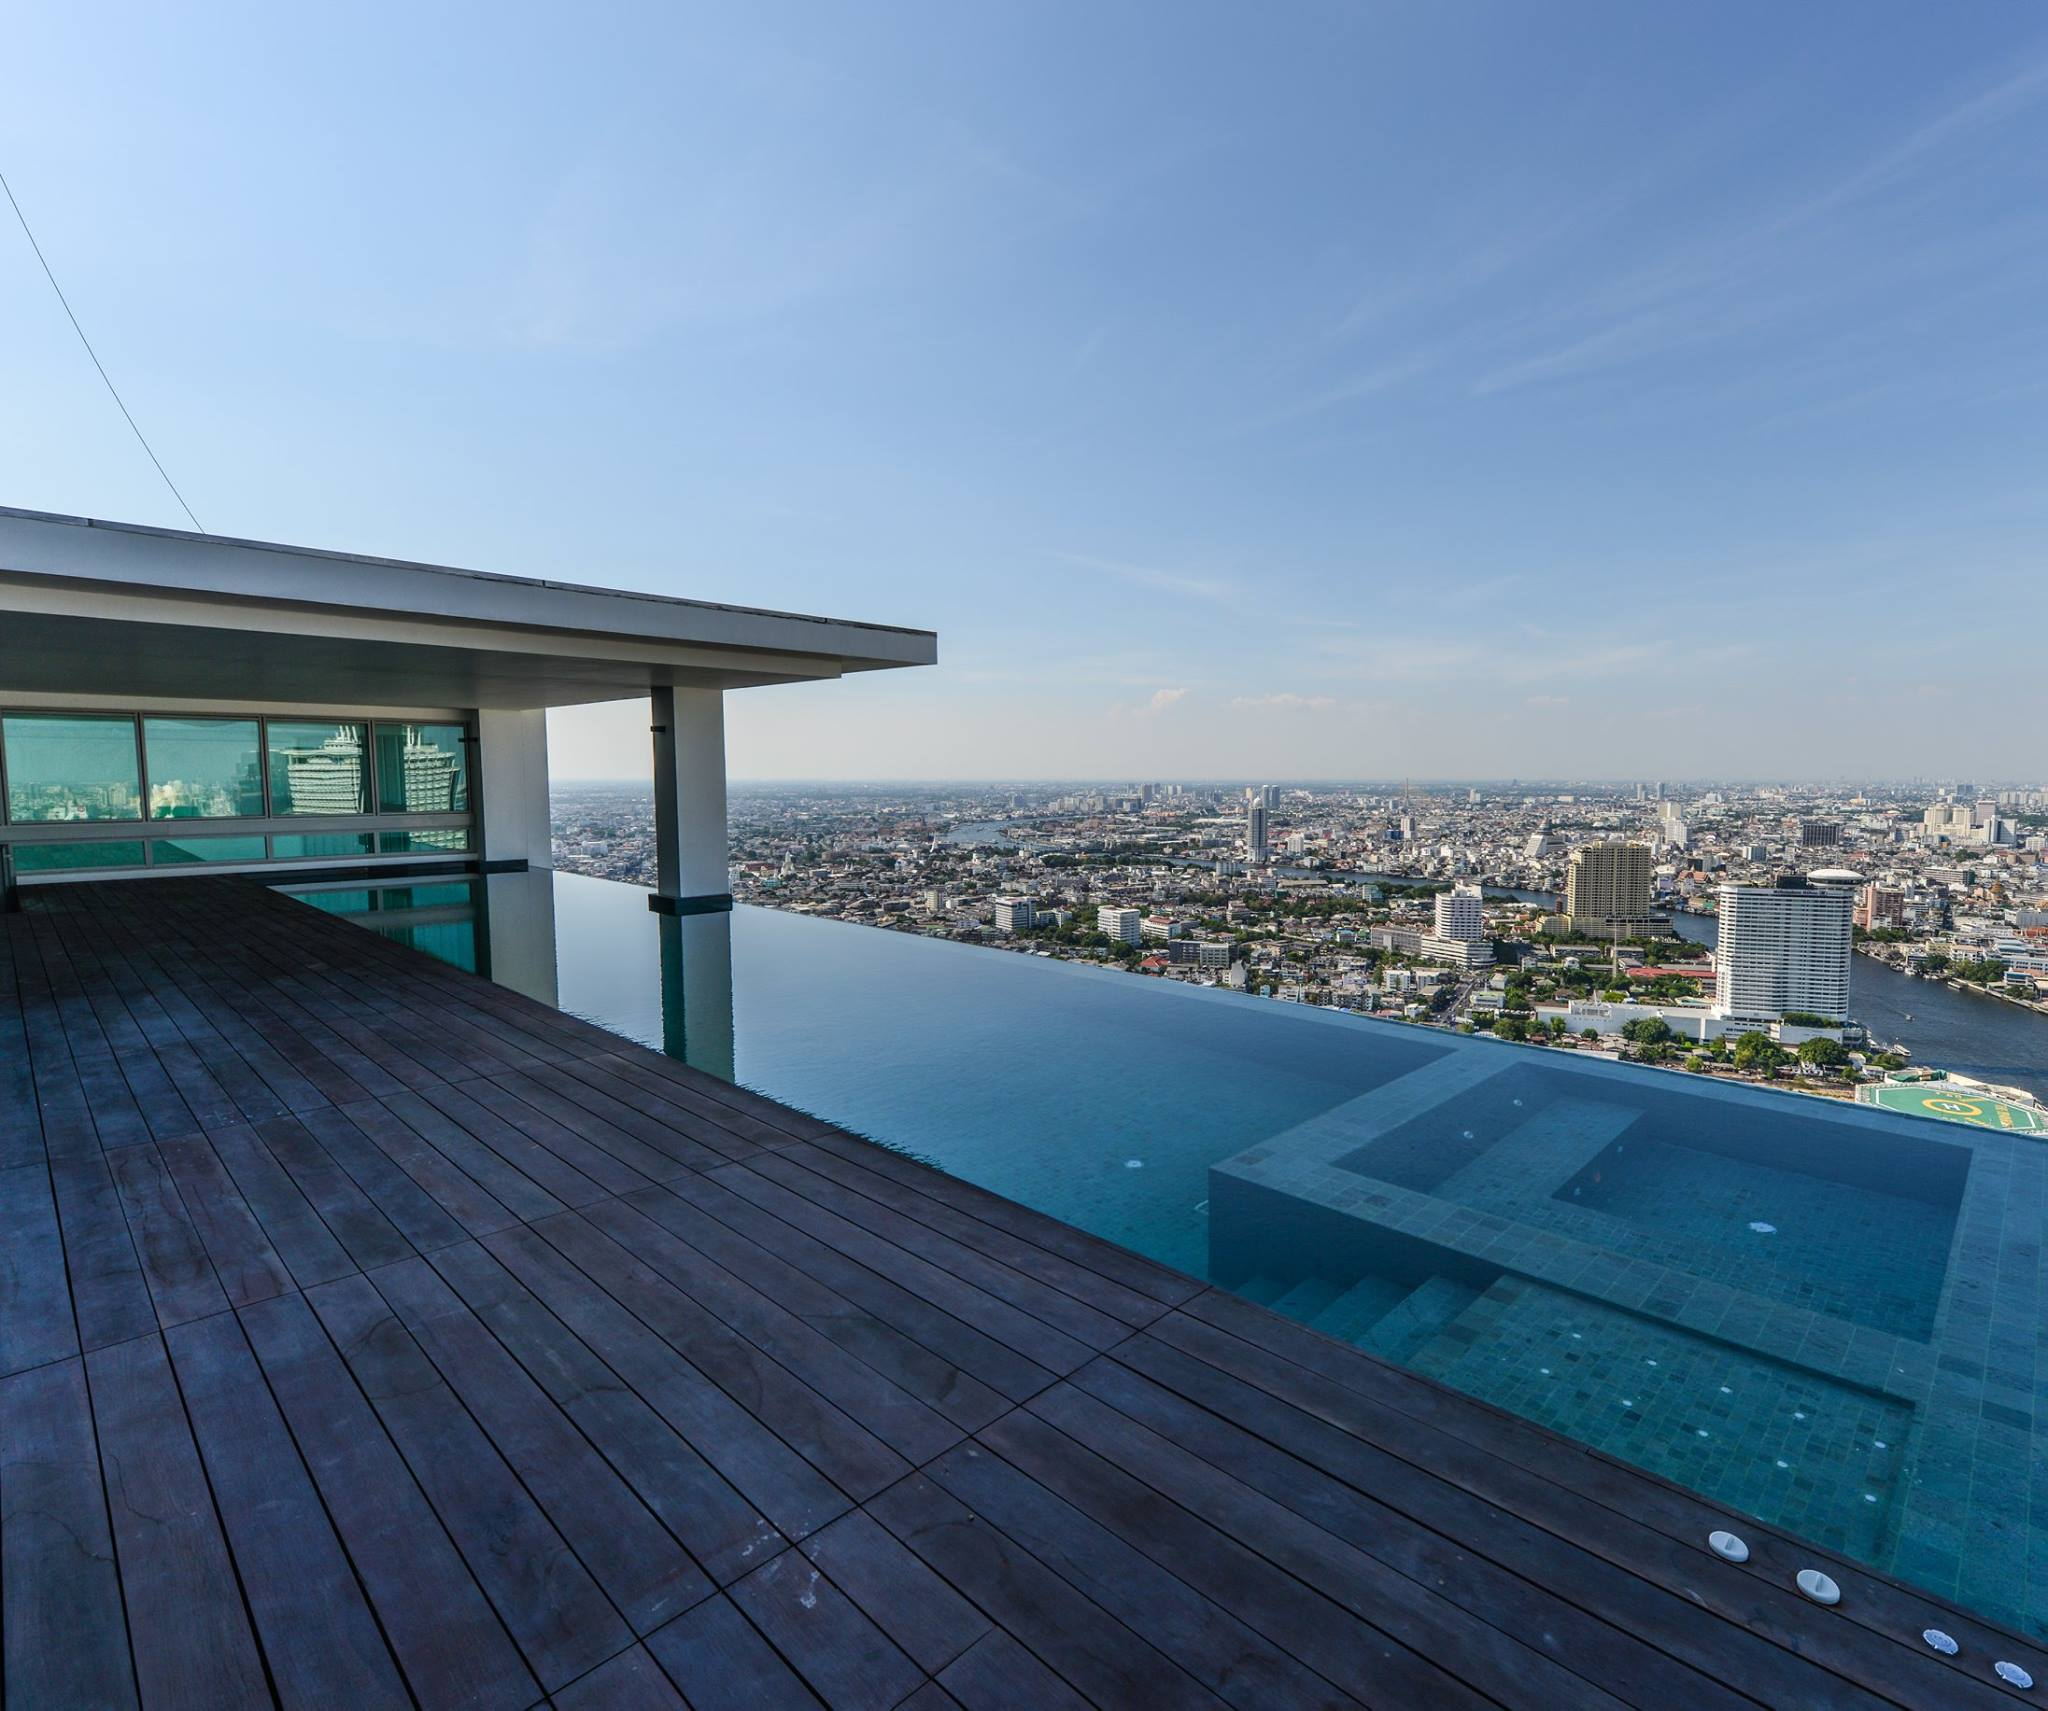 VisionQuest Thailand Property Agency's The River Penthouse 942sq.m spectacular 180 degrees river and city views 1